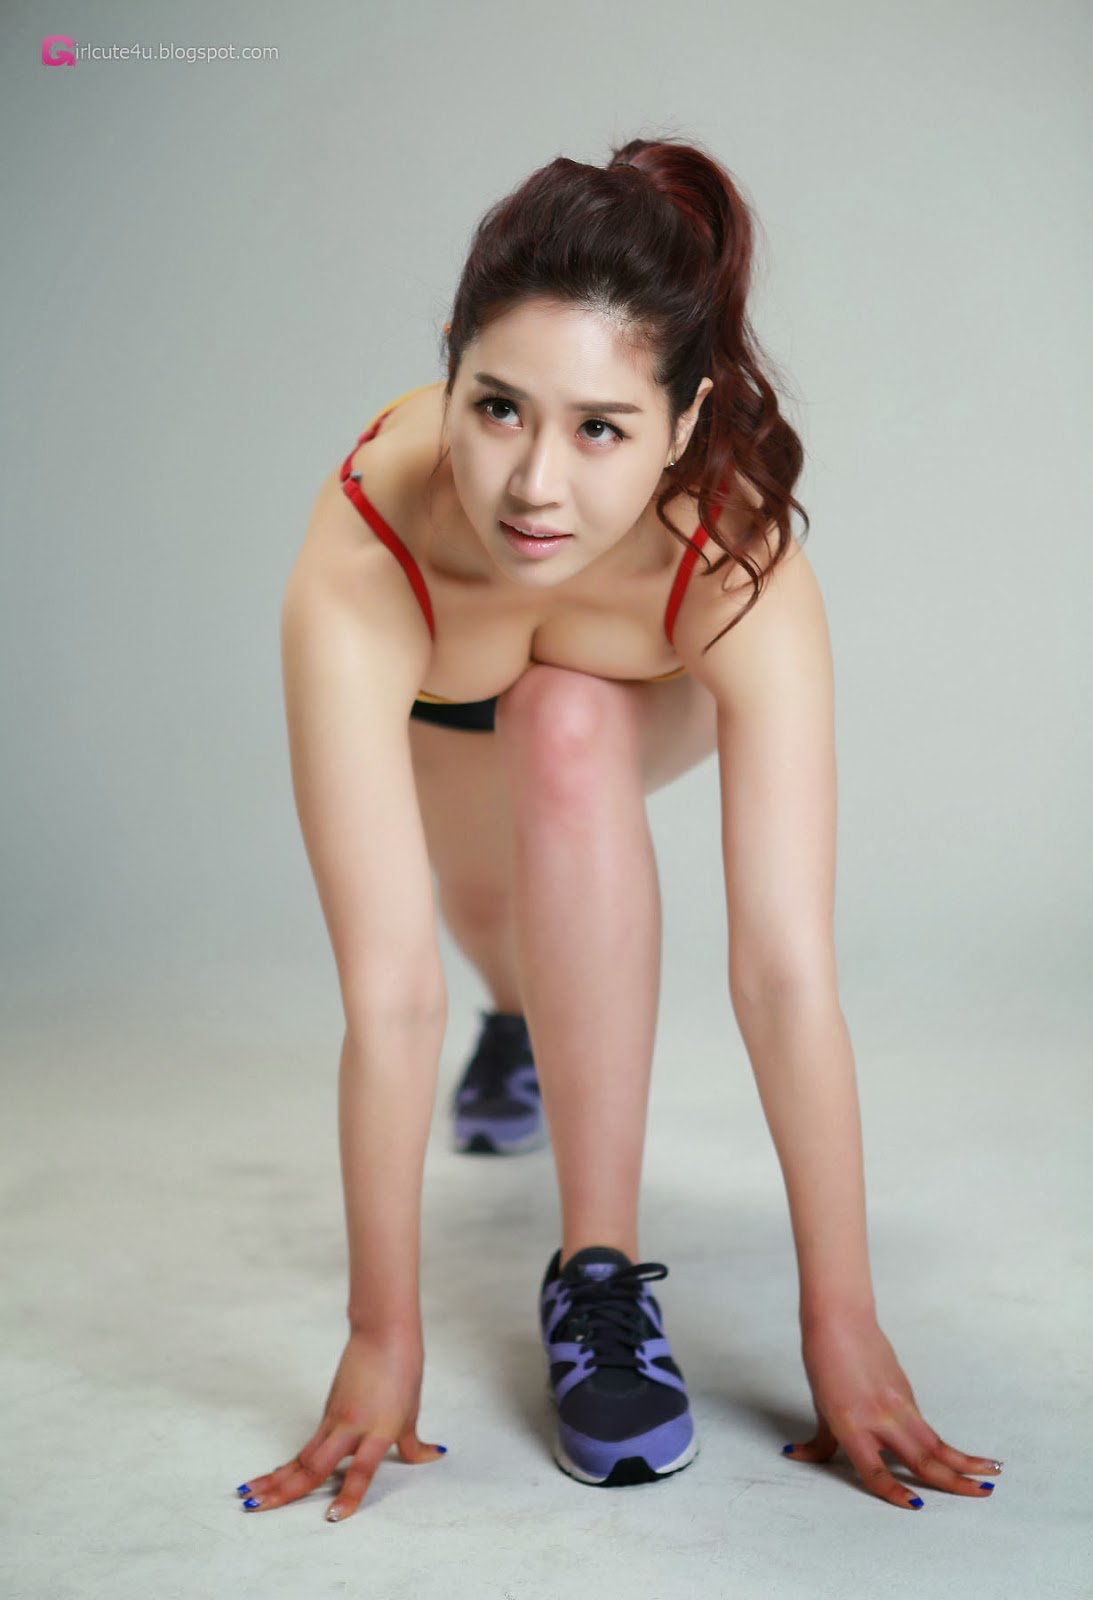 5 Lee Seo Hyun - Yogi Wear - very cute asian girl-girlcute4u.blogspot.com